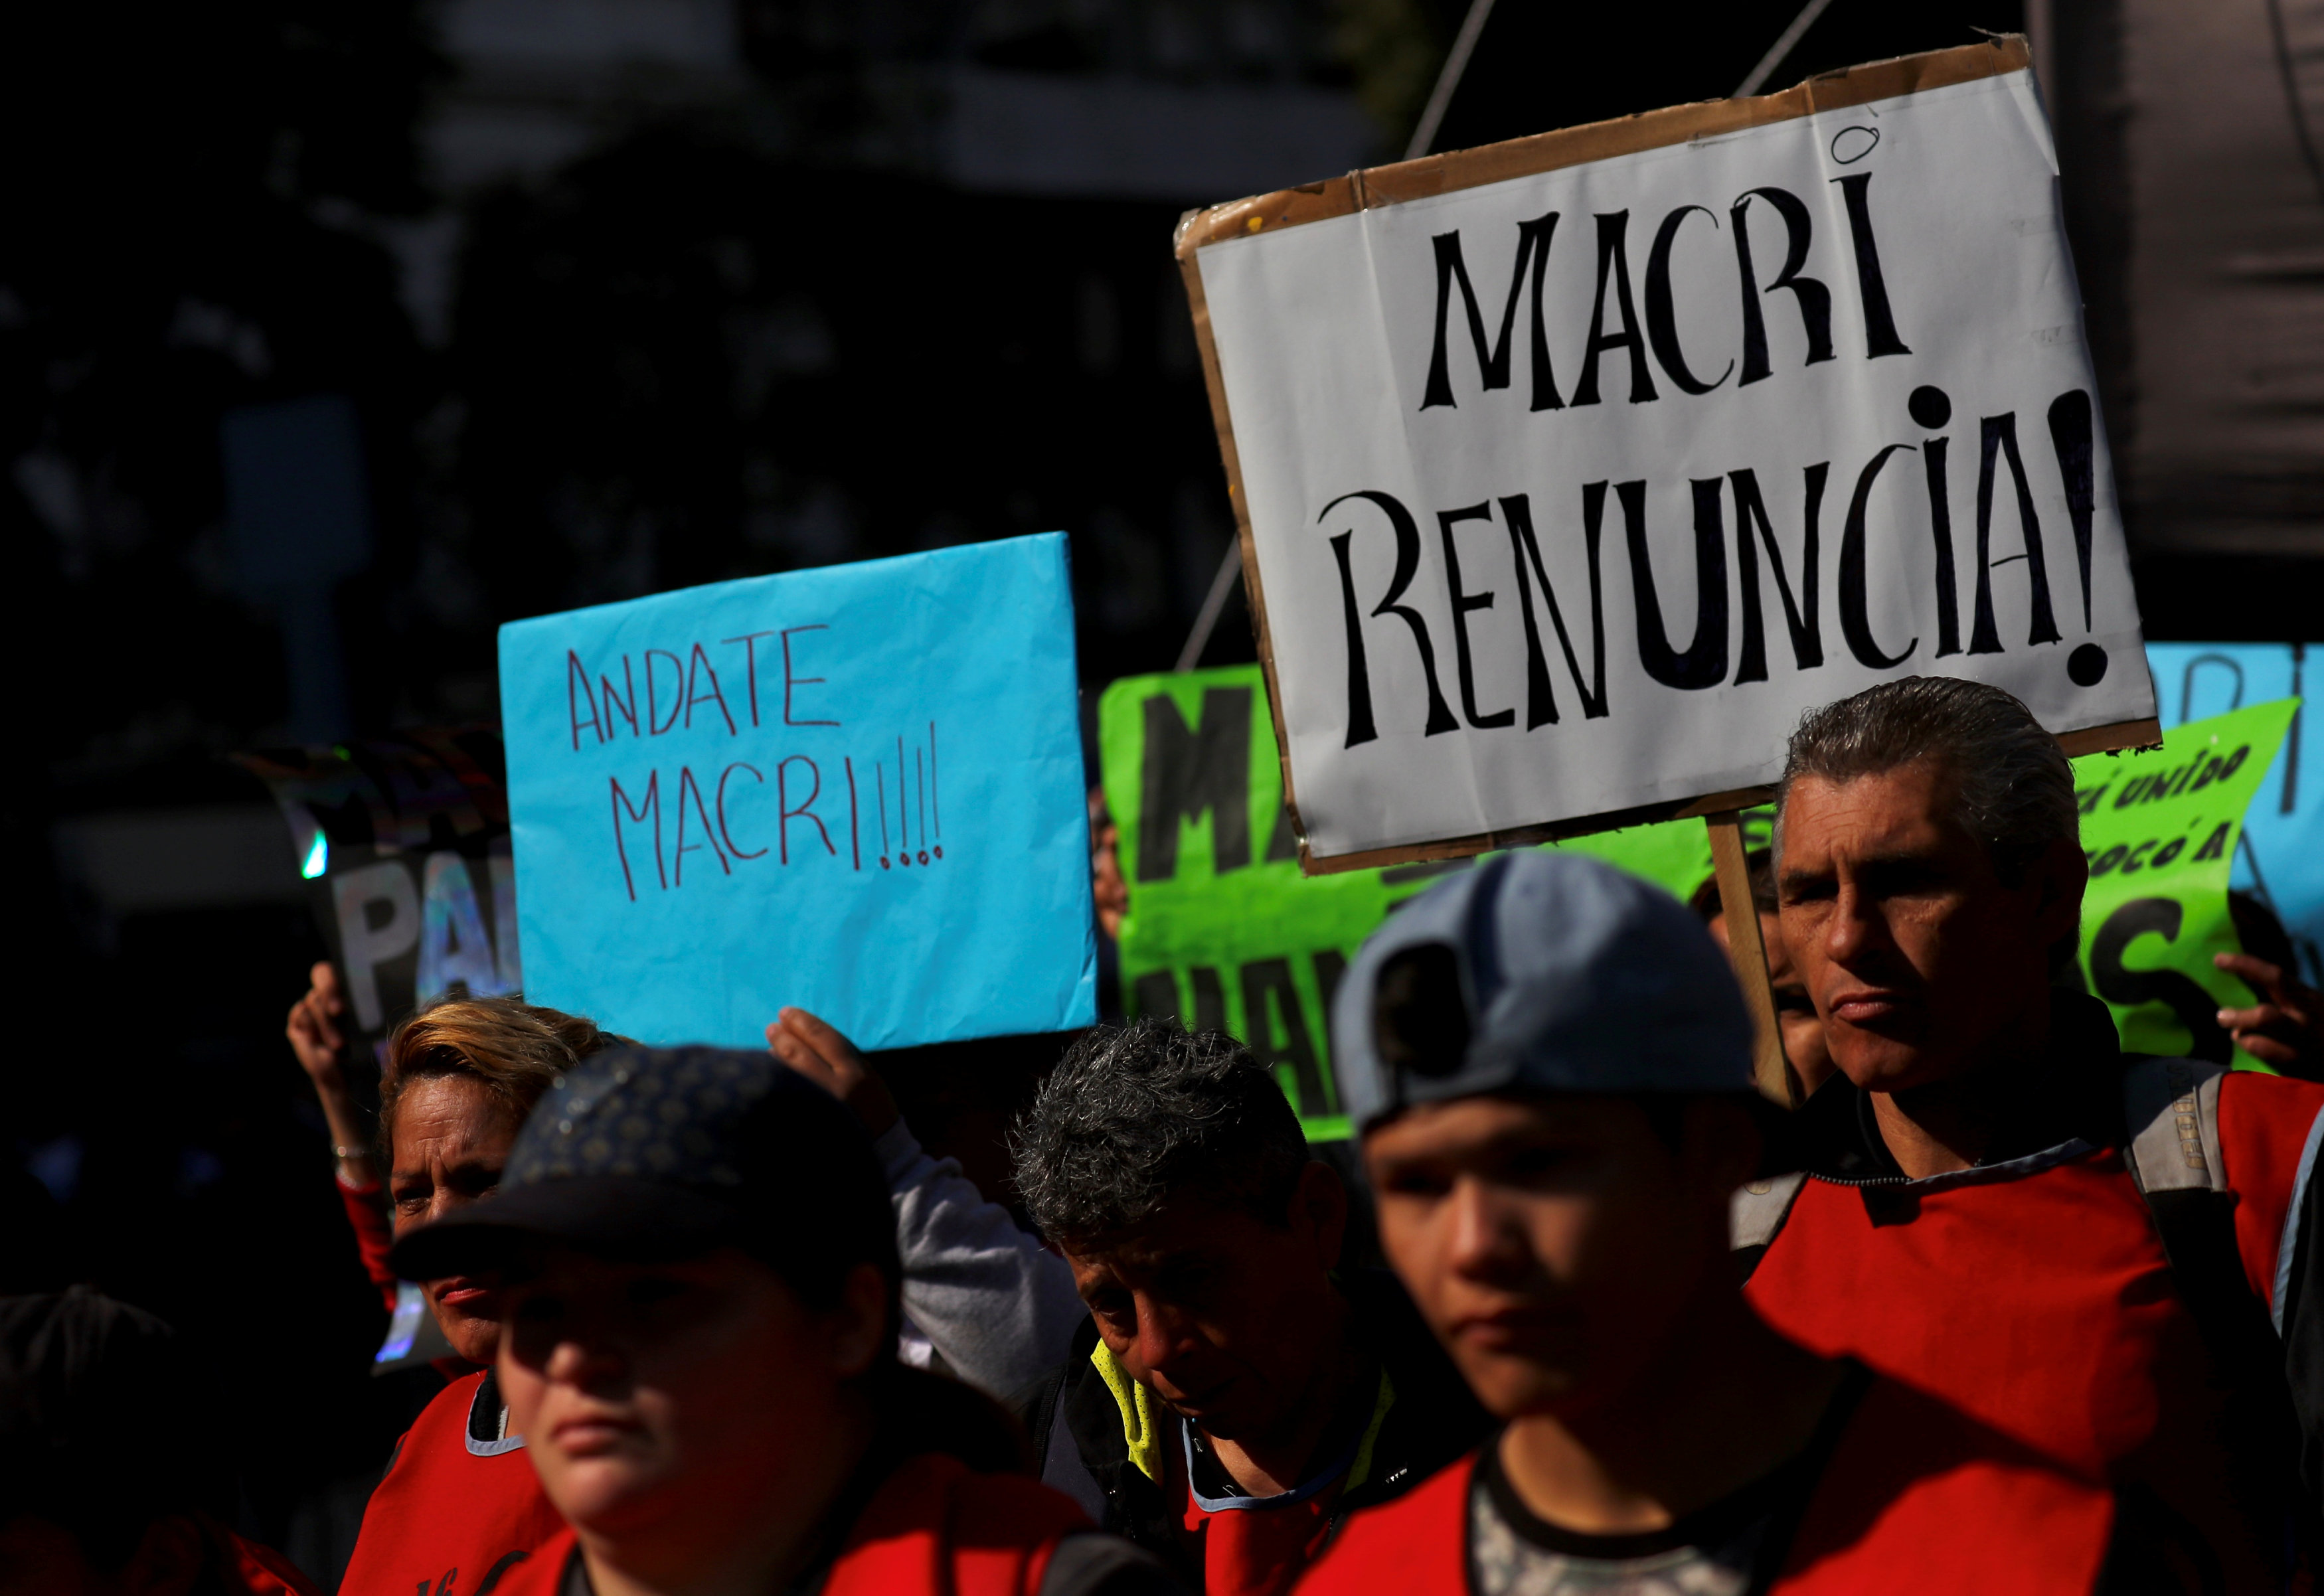 Demonstrators hold up signs during a protest against the government's economic measures in Buenos Aires